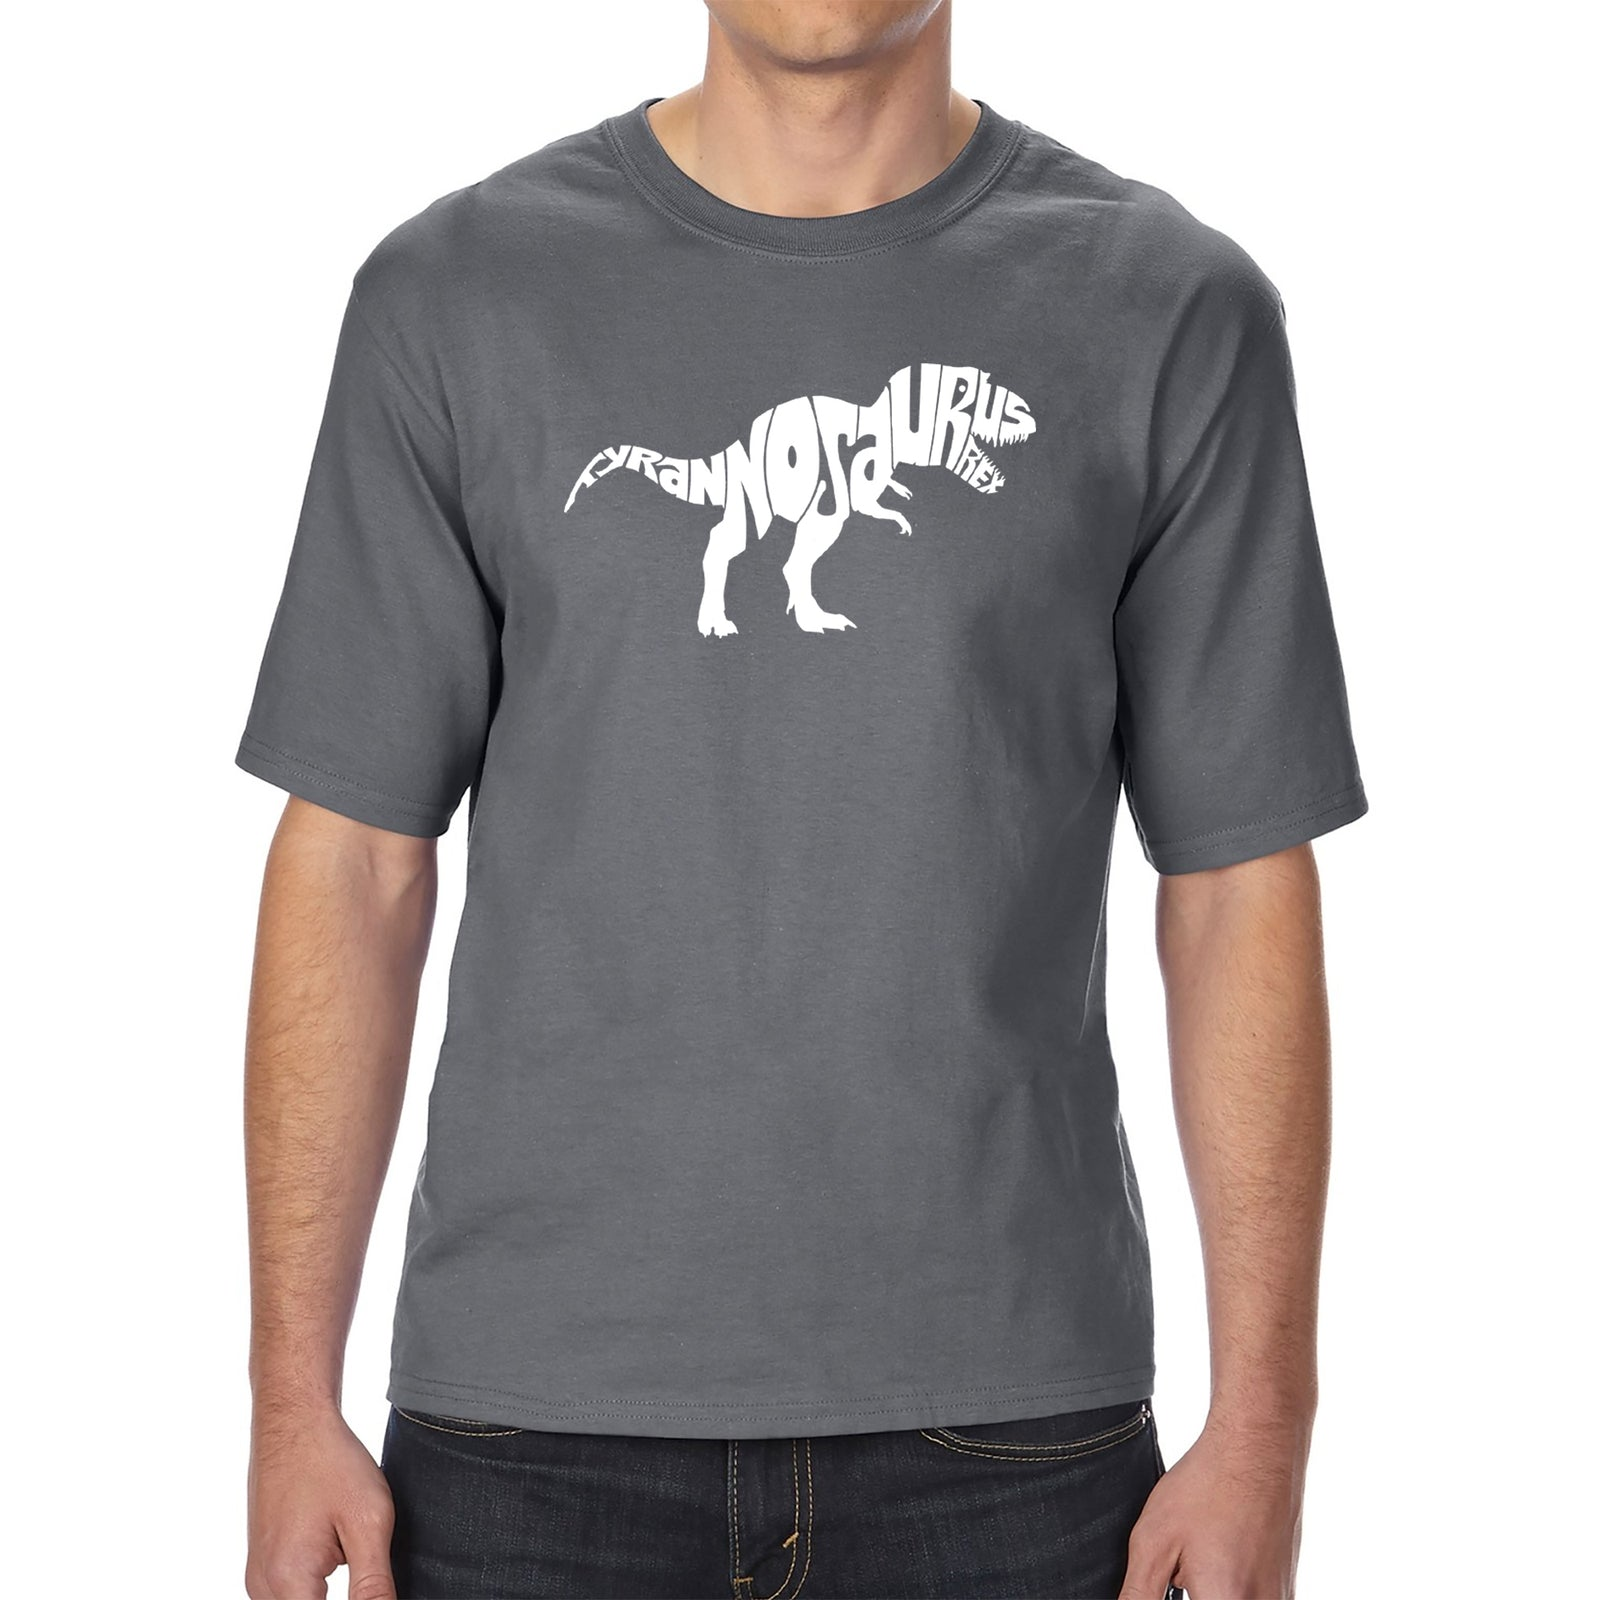 Men's Tall and Long Word Art T-shirt - TYRANNOSAURUS REX